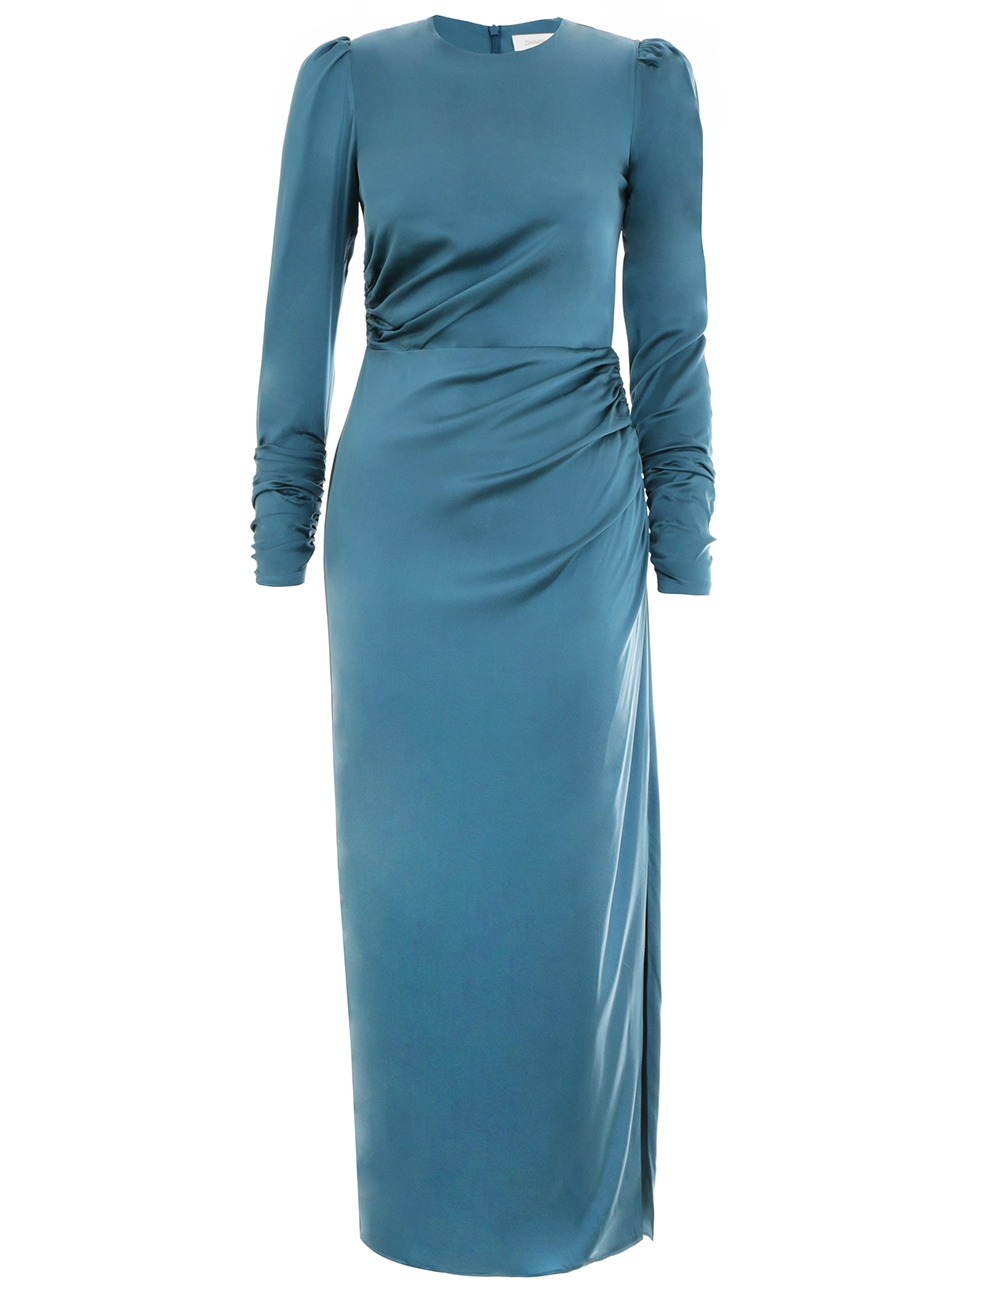 Ruched Drape Dress